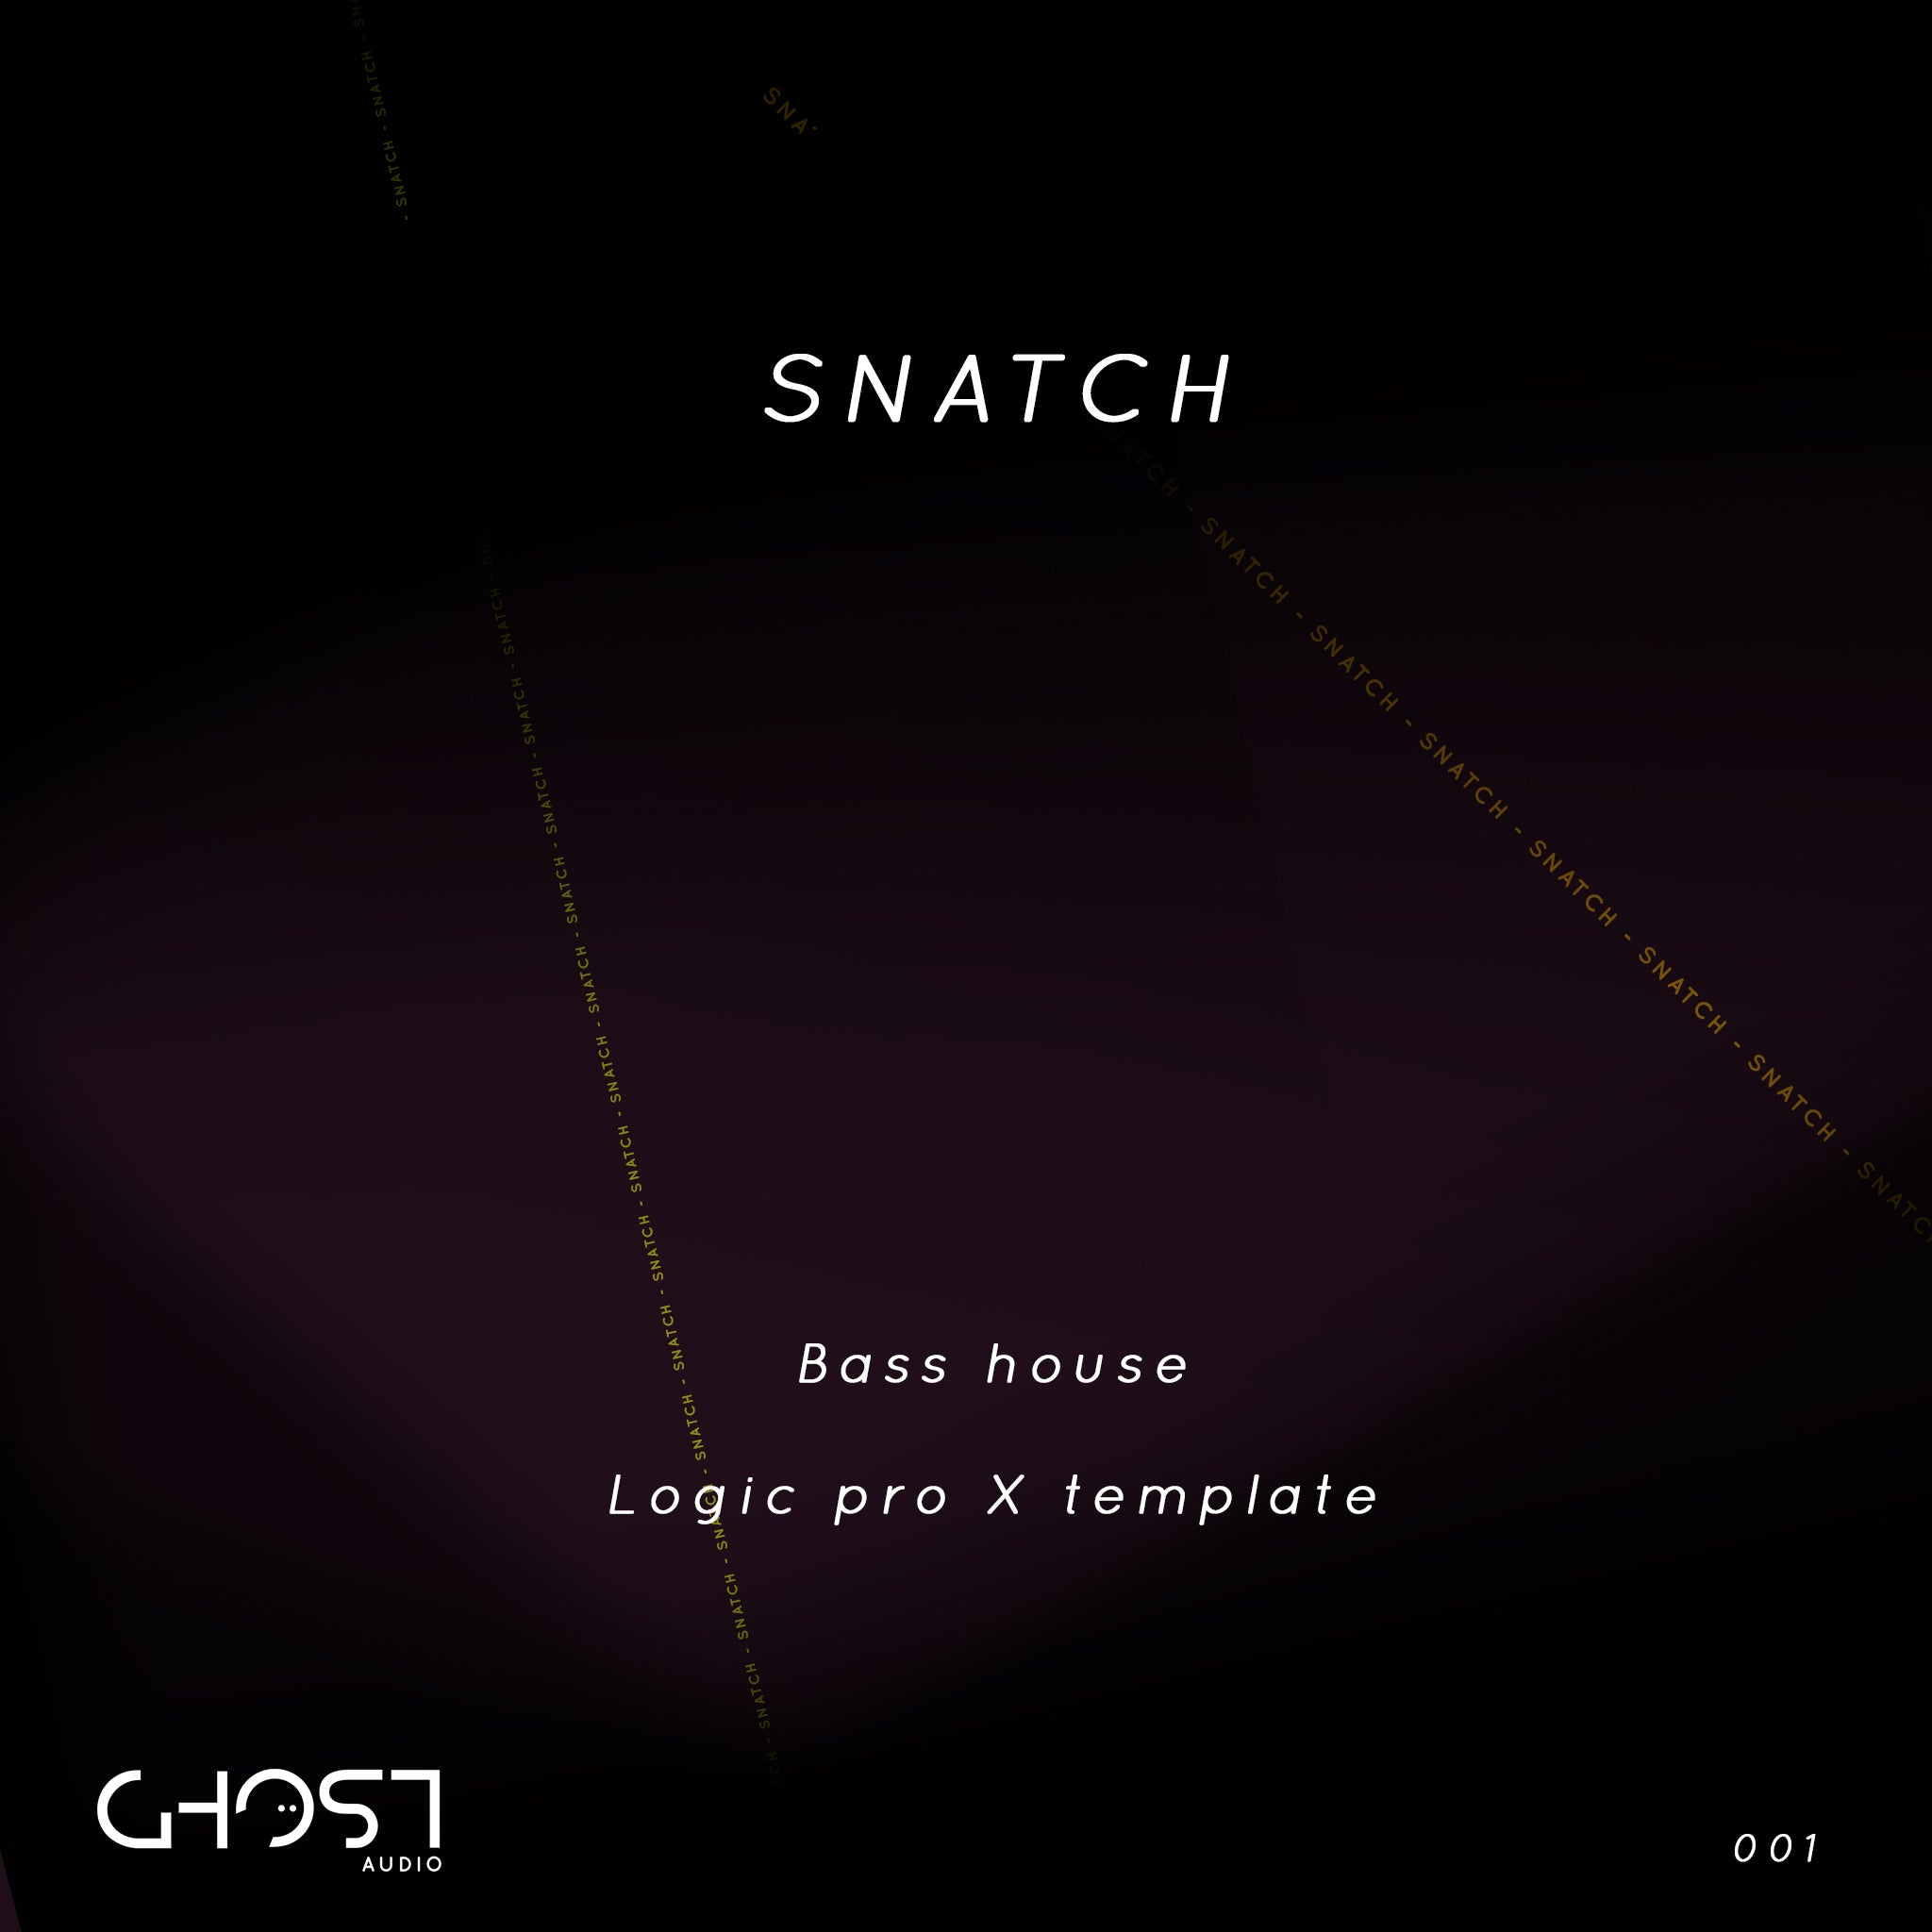 SNATCH - BASS HOUSE ( LOGIC PRO X TEMPLATE )